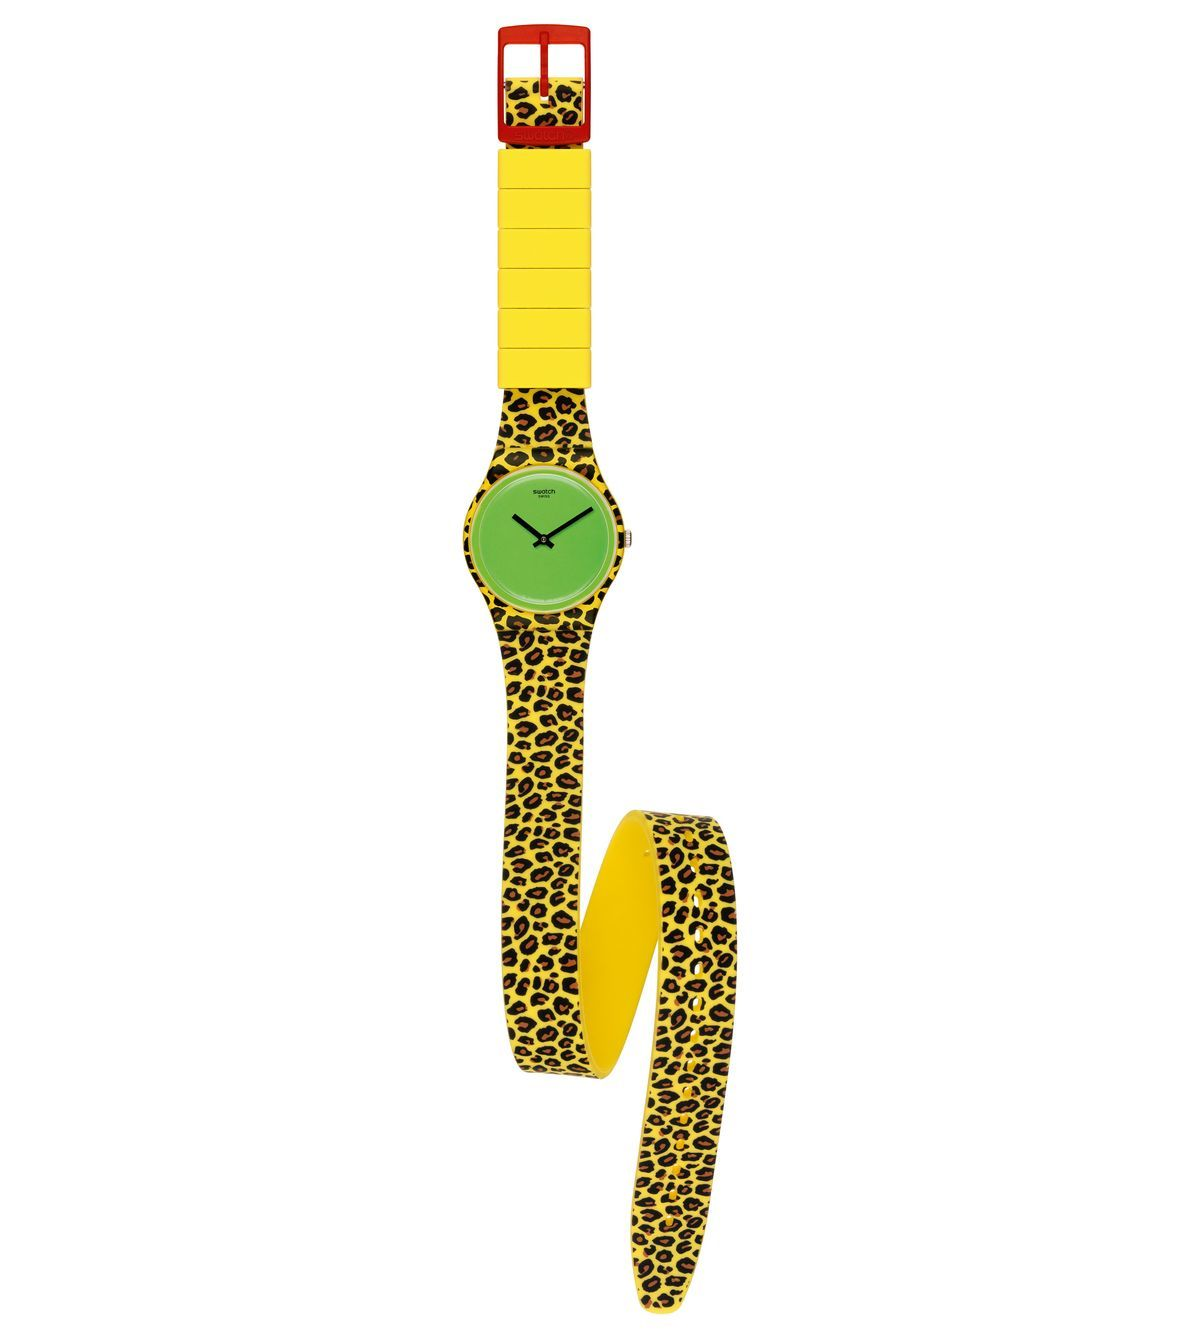 SWATCH PUNK - GZ251